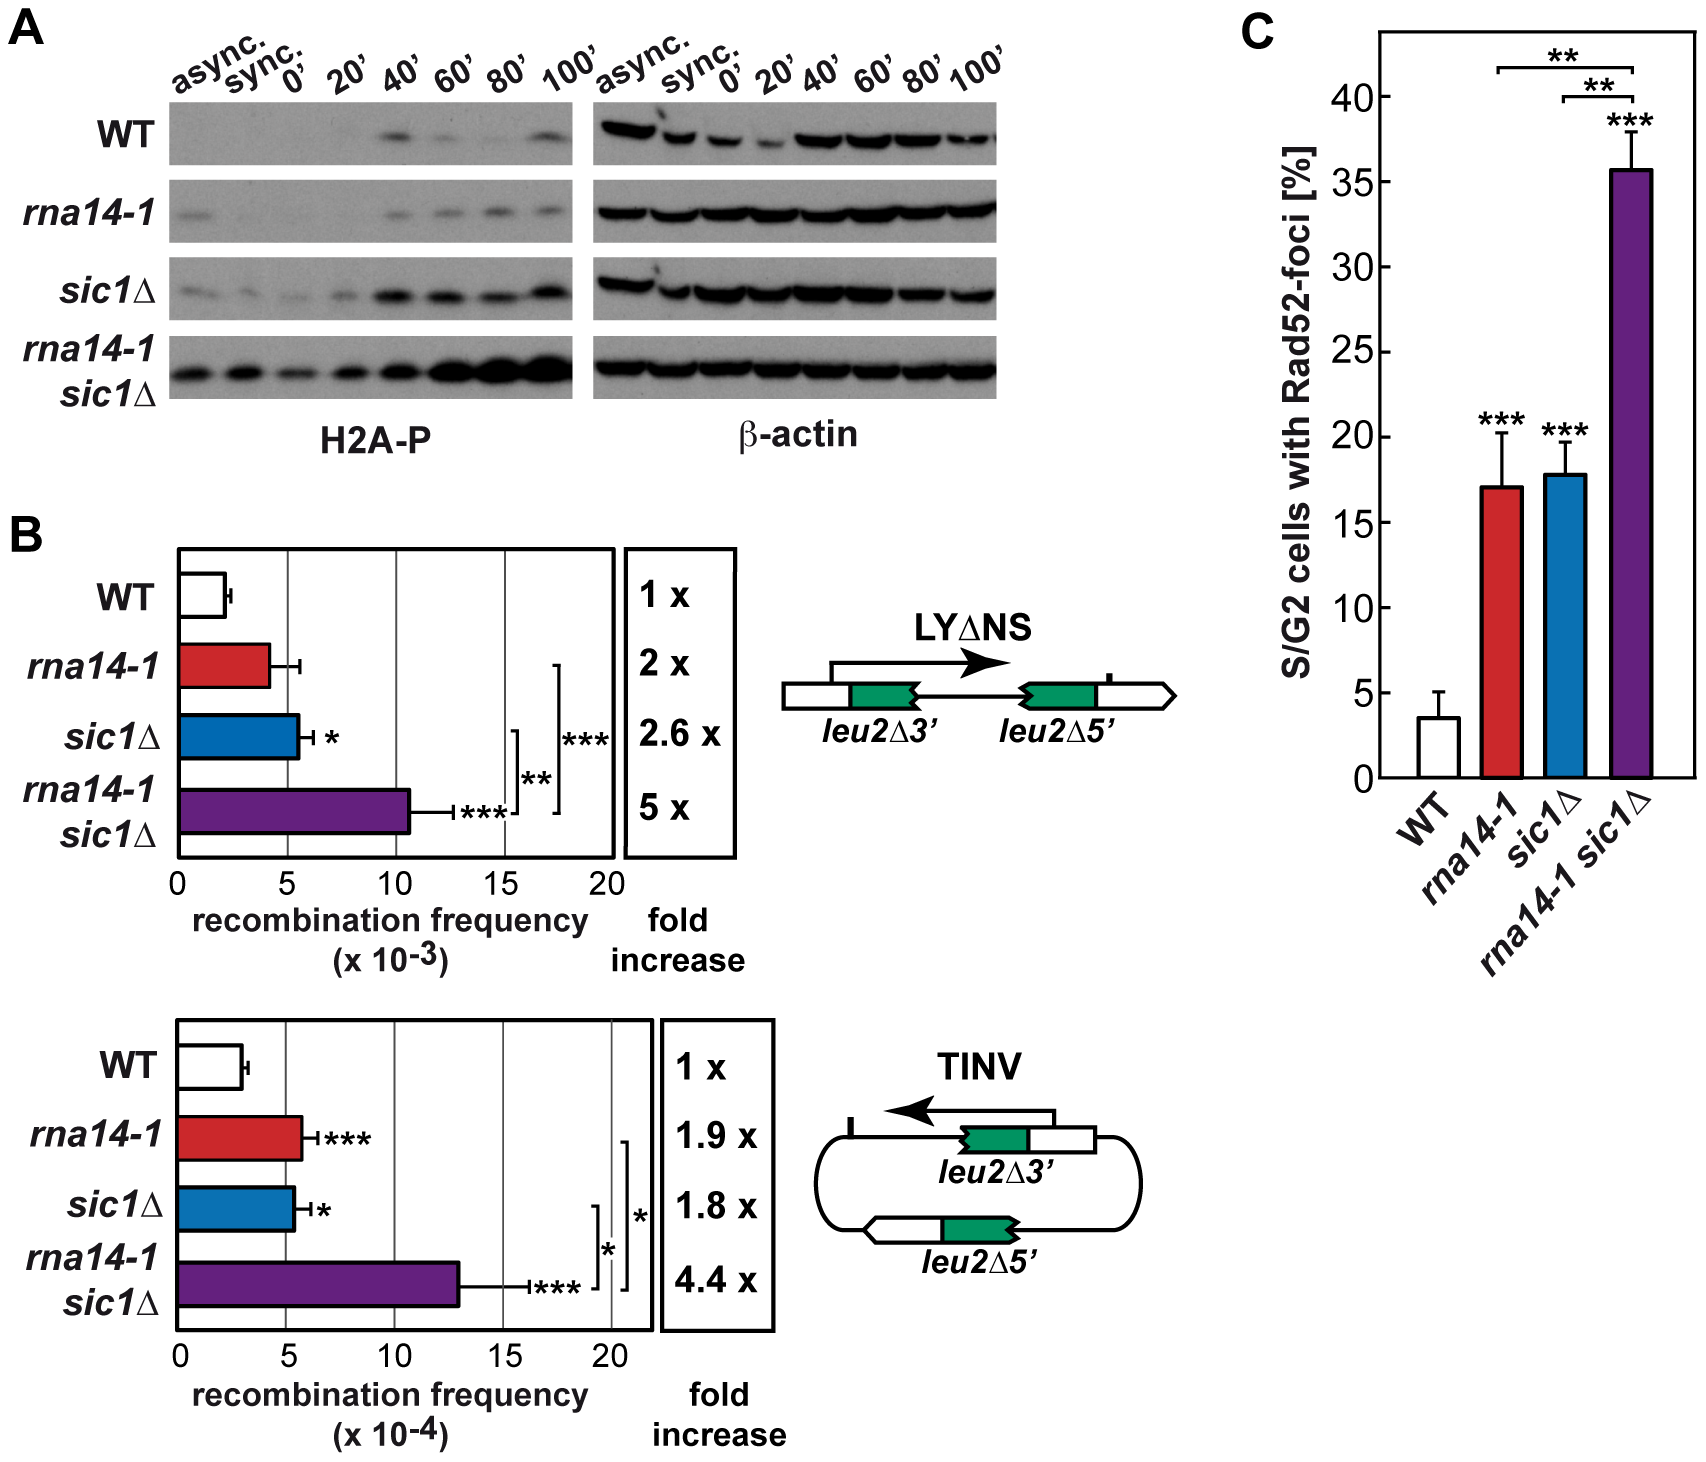 Absence of functional G1/S checkpoint leads to DNA damage and genomic instability in <i>rna14-1</i> cells.